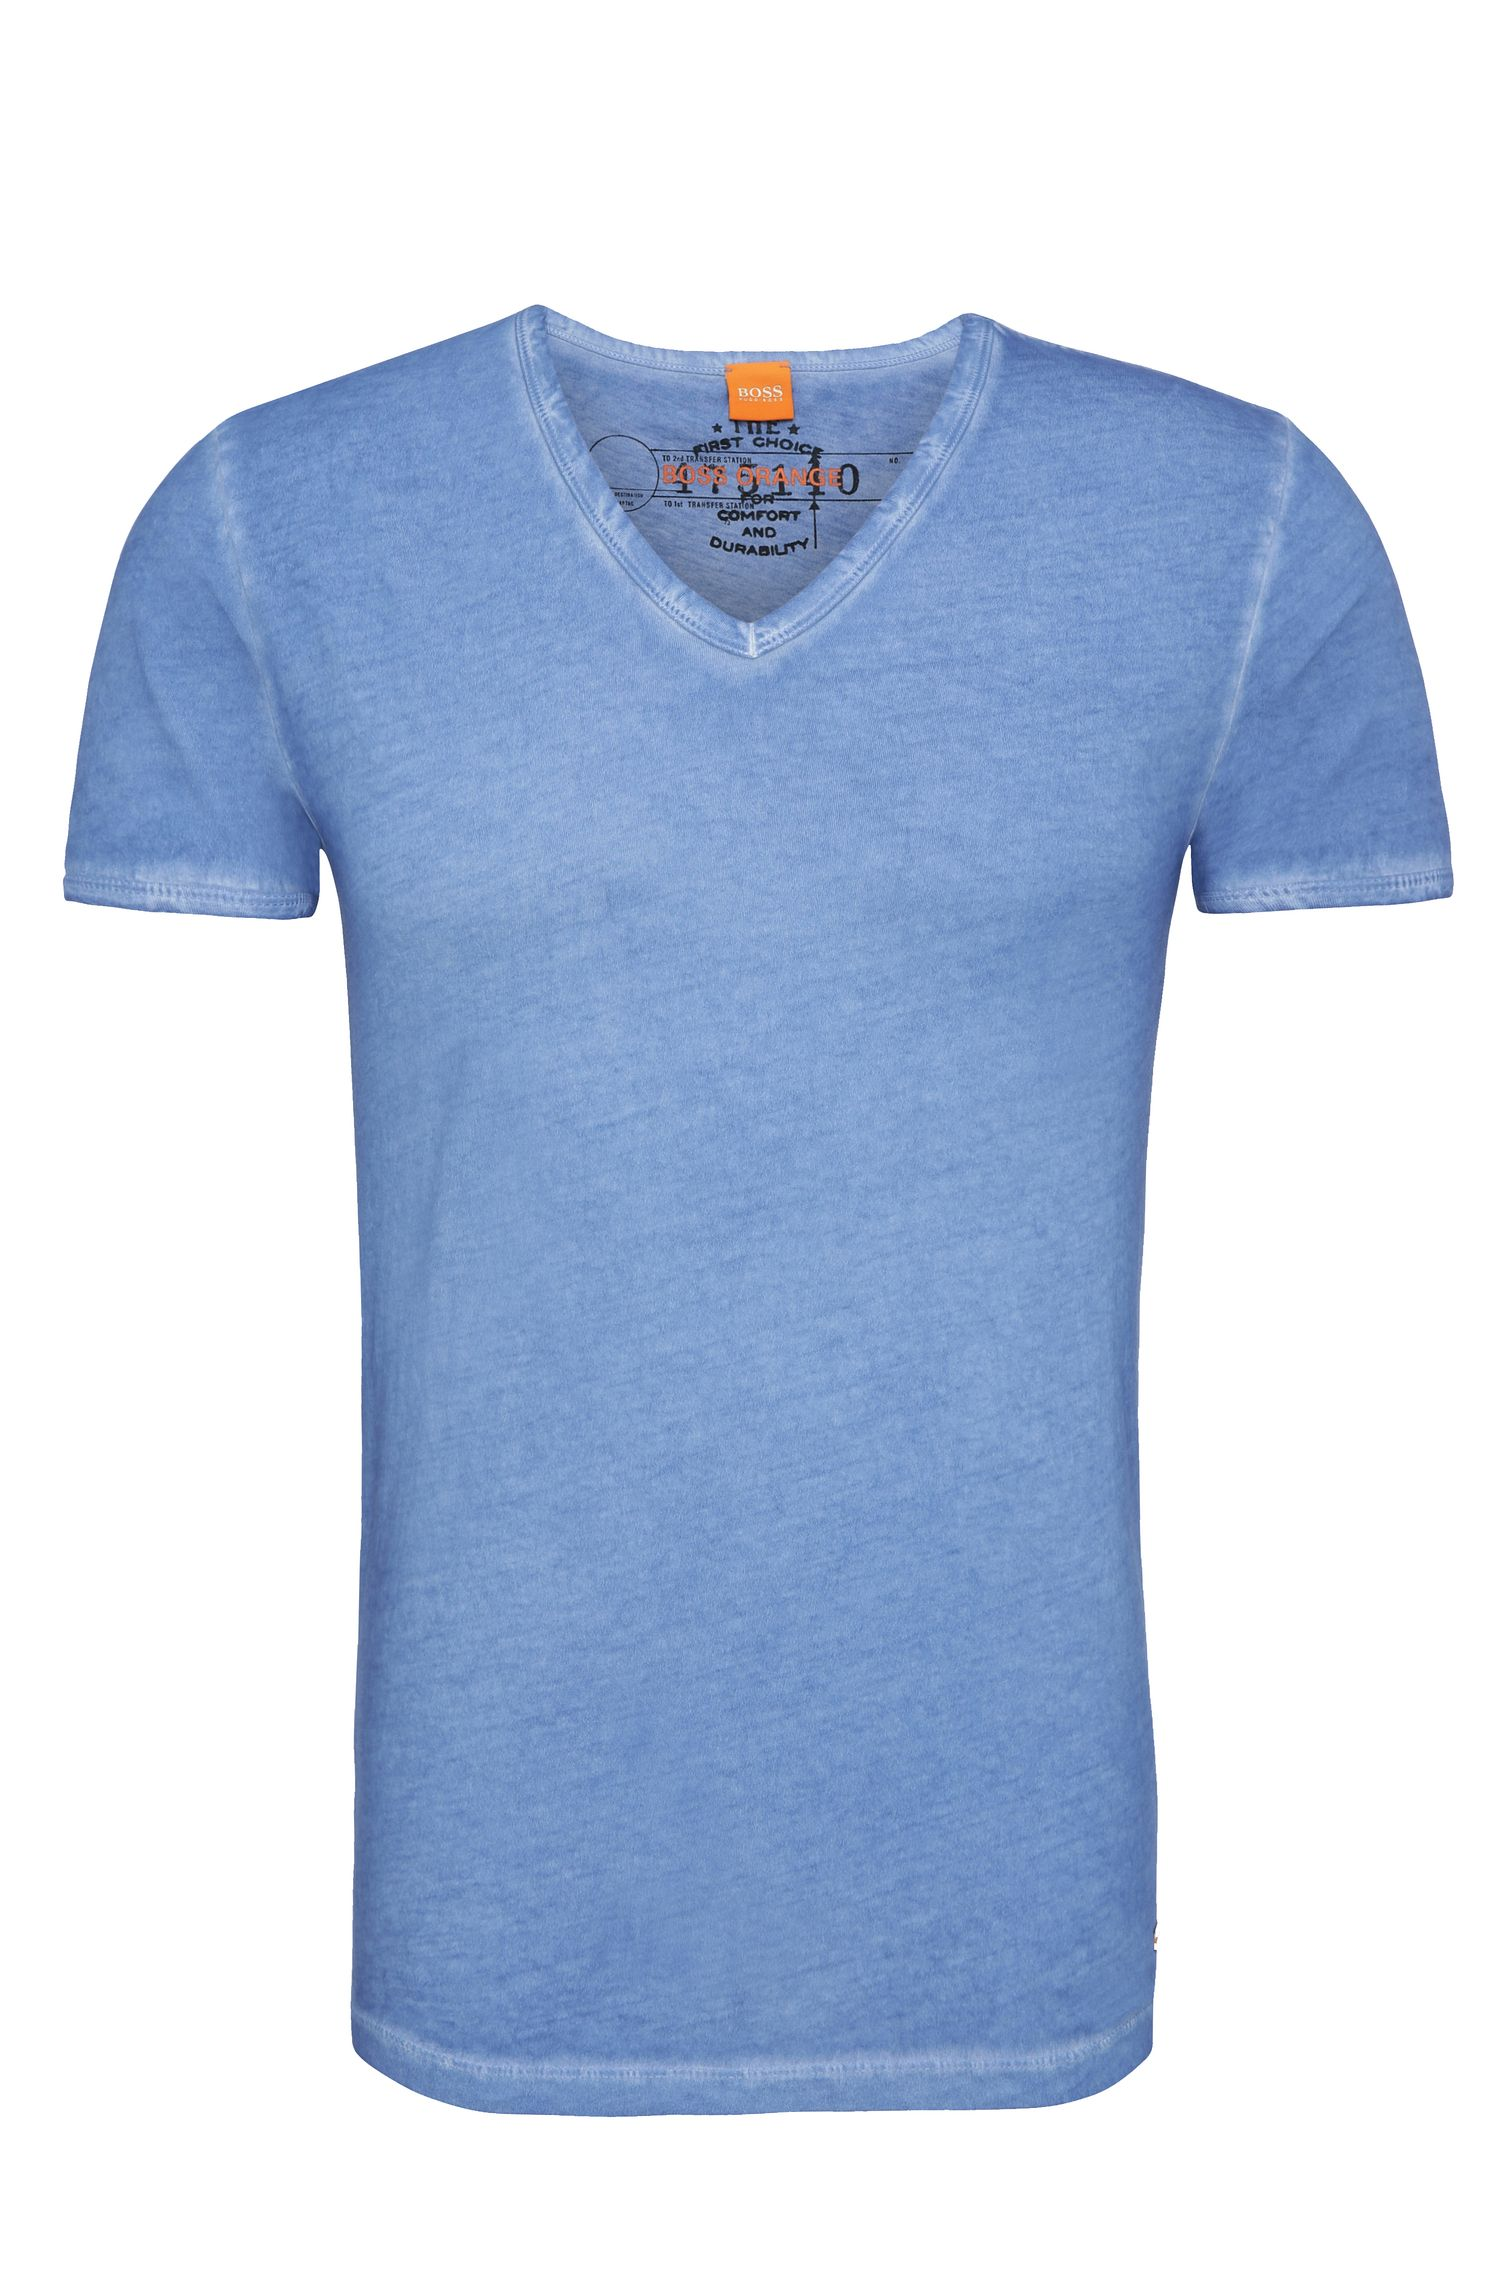 T-shirt regular fit in cotone tinto in capo